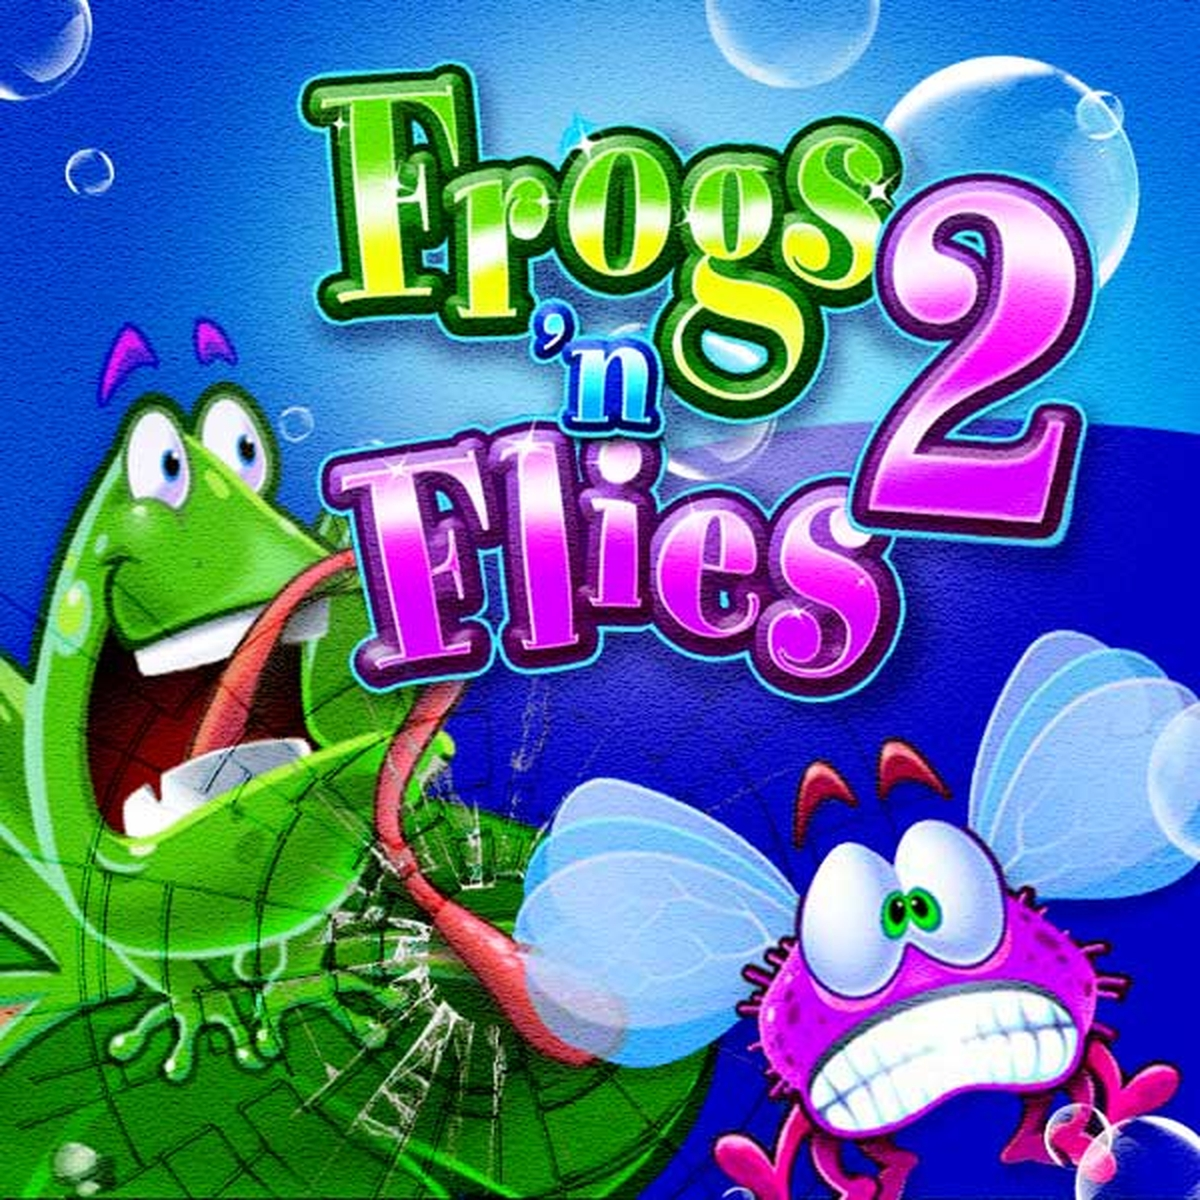 The Frogs 'n Flies 2 Online Slot Demo Game by Top Trend Gaming